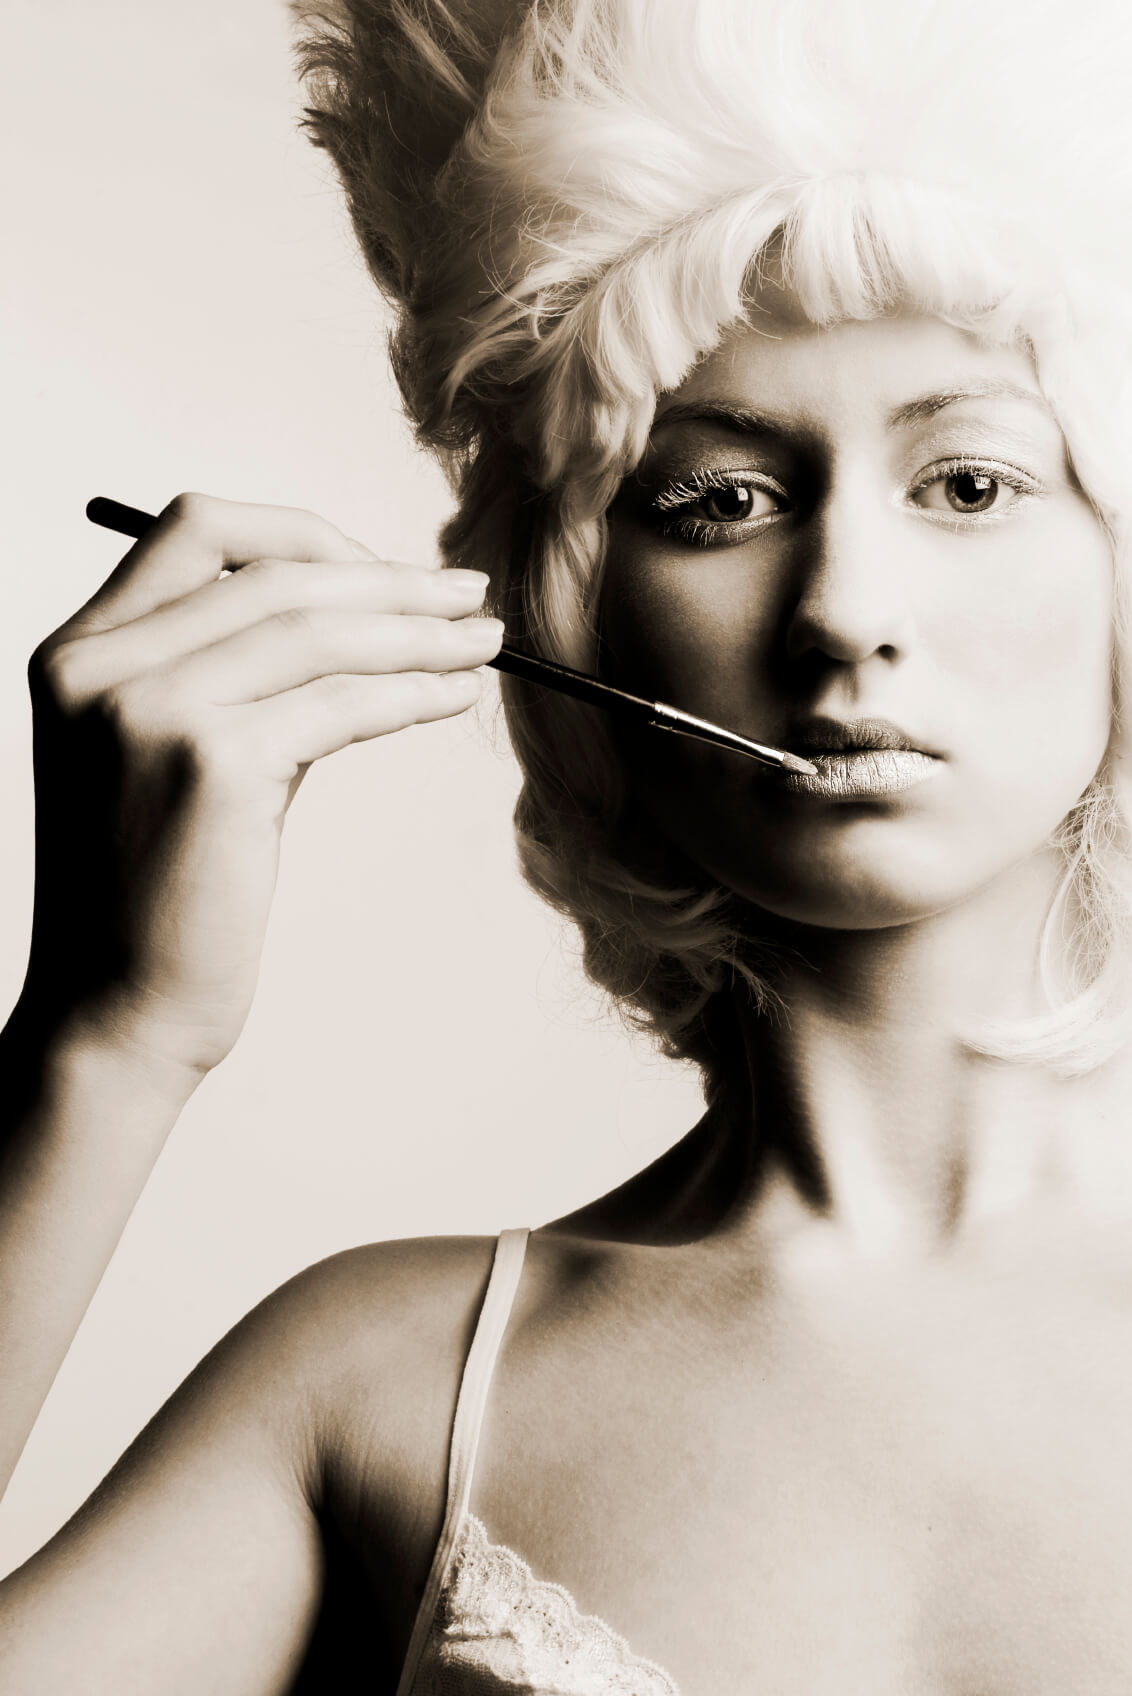 Beautiful girl with white hairdo holding a brush against her lips.[url=http://www.istockphoto.com/my_lightbox_contents.php?lightboxID=1750218]Click here for more pictures of this model![/url]